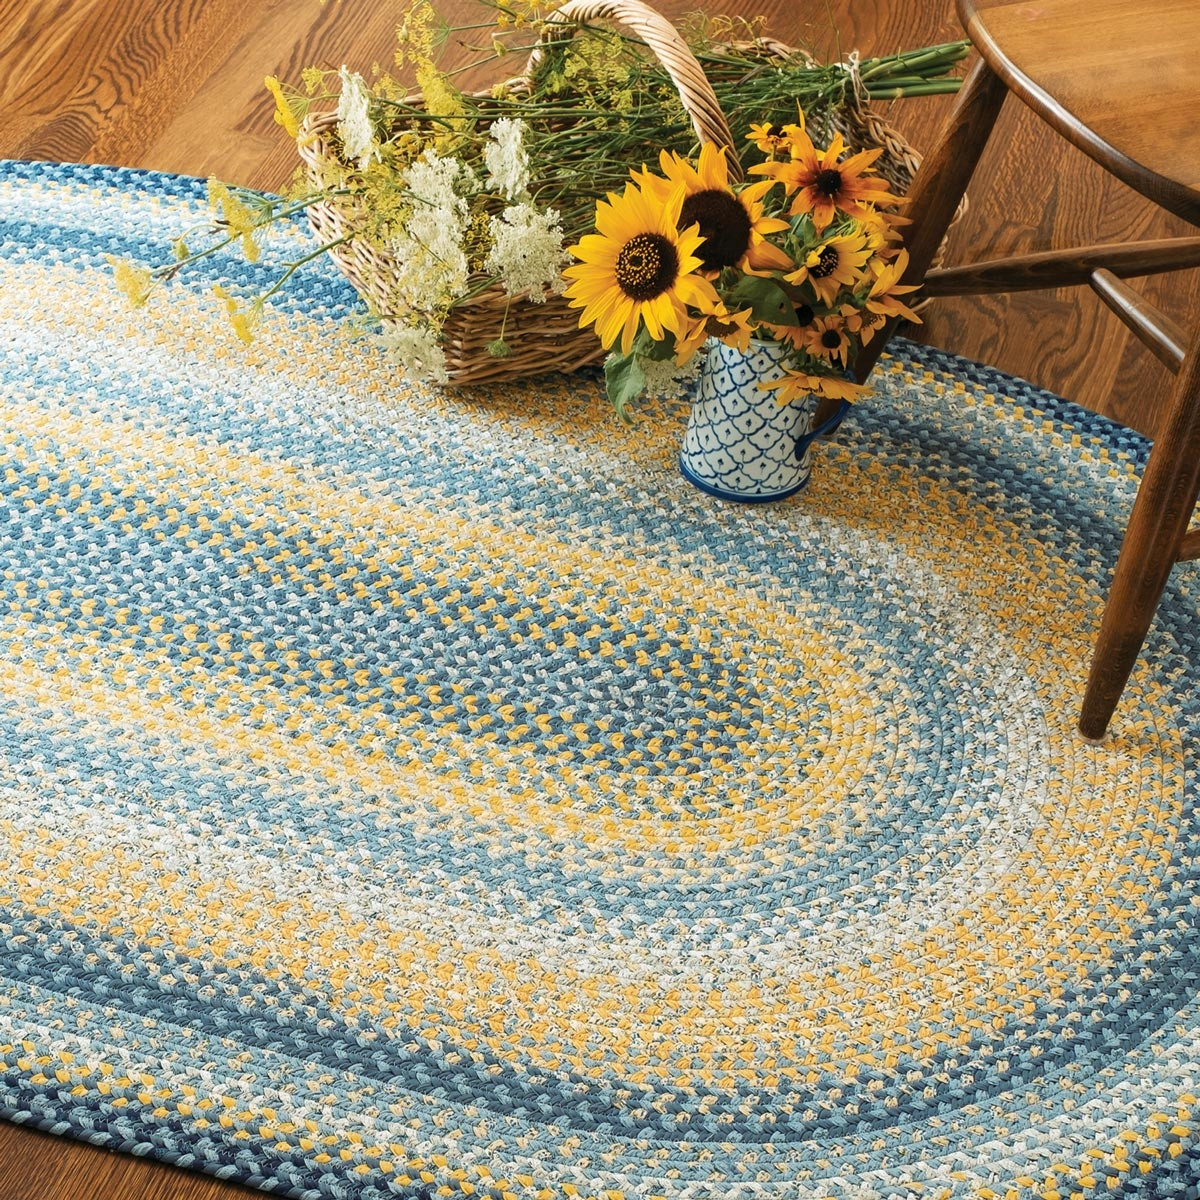 Buy Sunflowers Blue Gold Cotton Braided Rugs Online